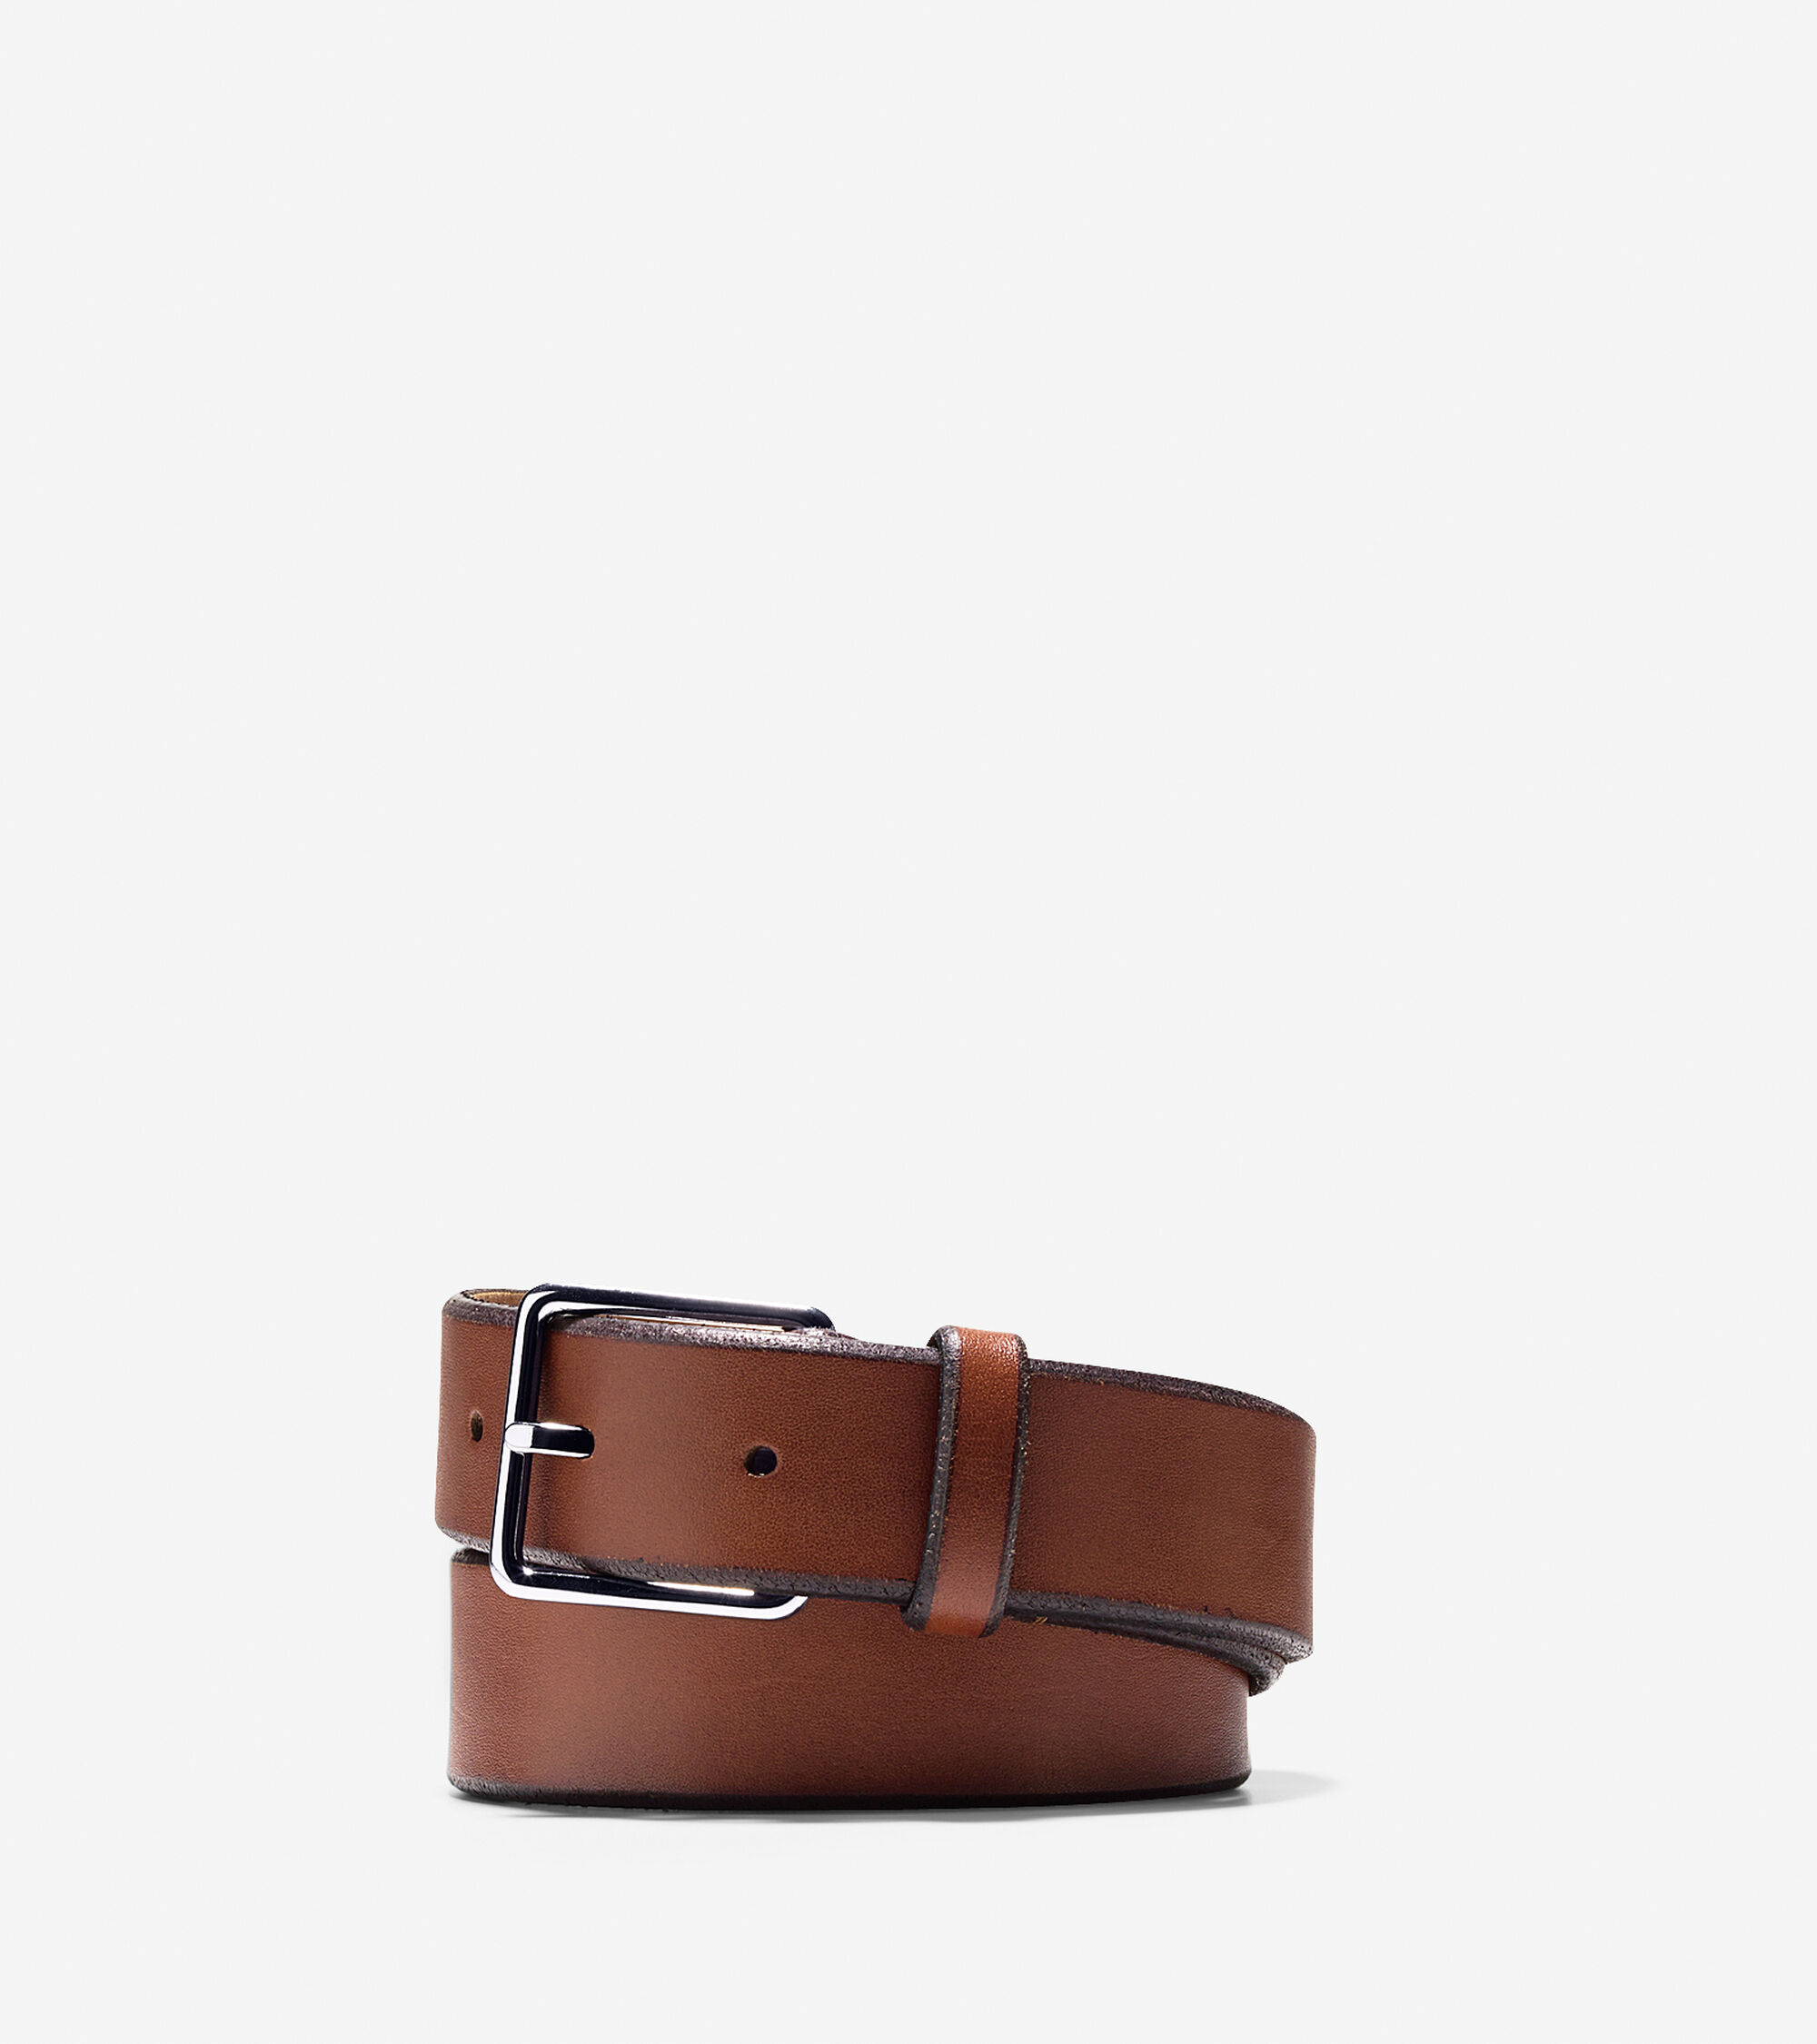 Accessories > 32mm Dress Leather Belt